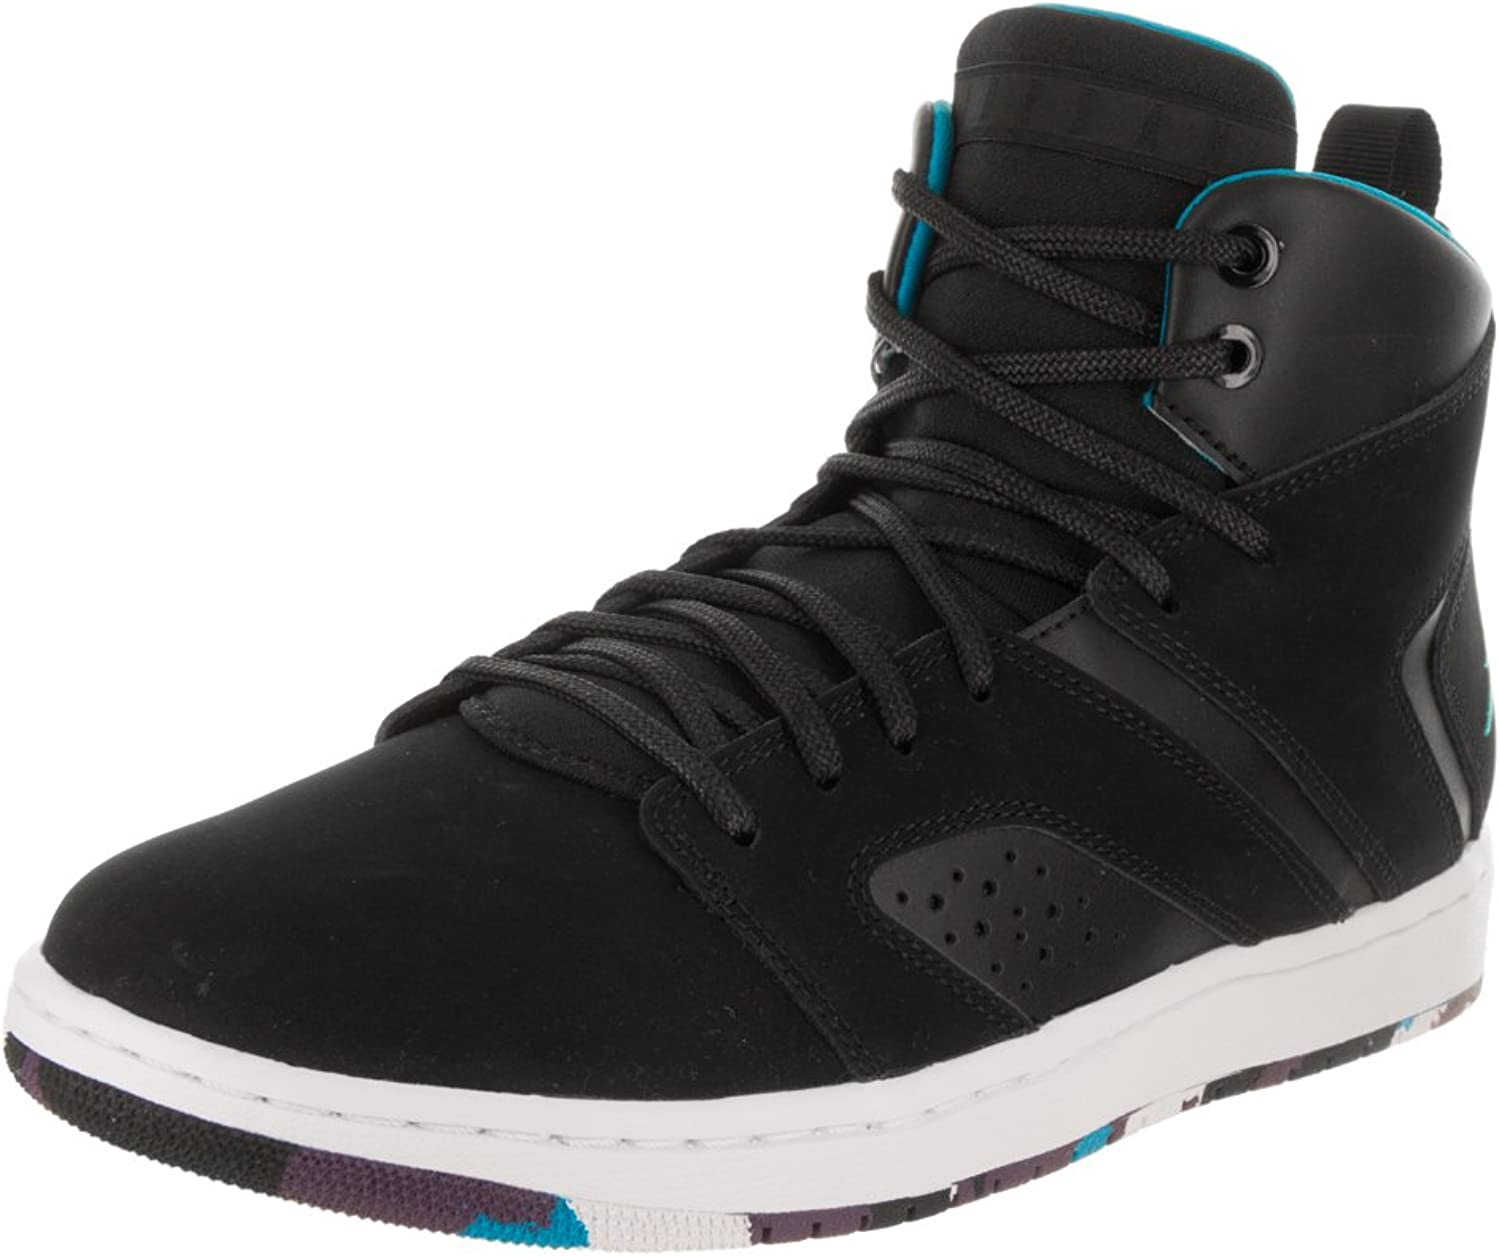 Jordan Nike Men's Flight Legend Basketball shoes